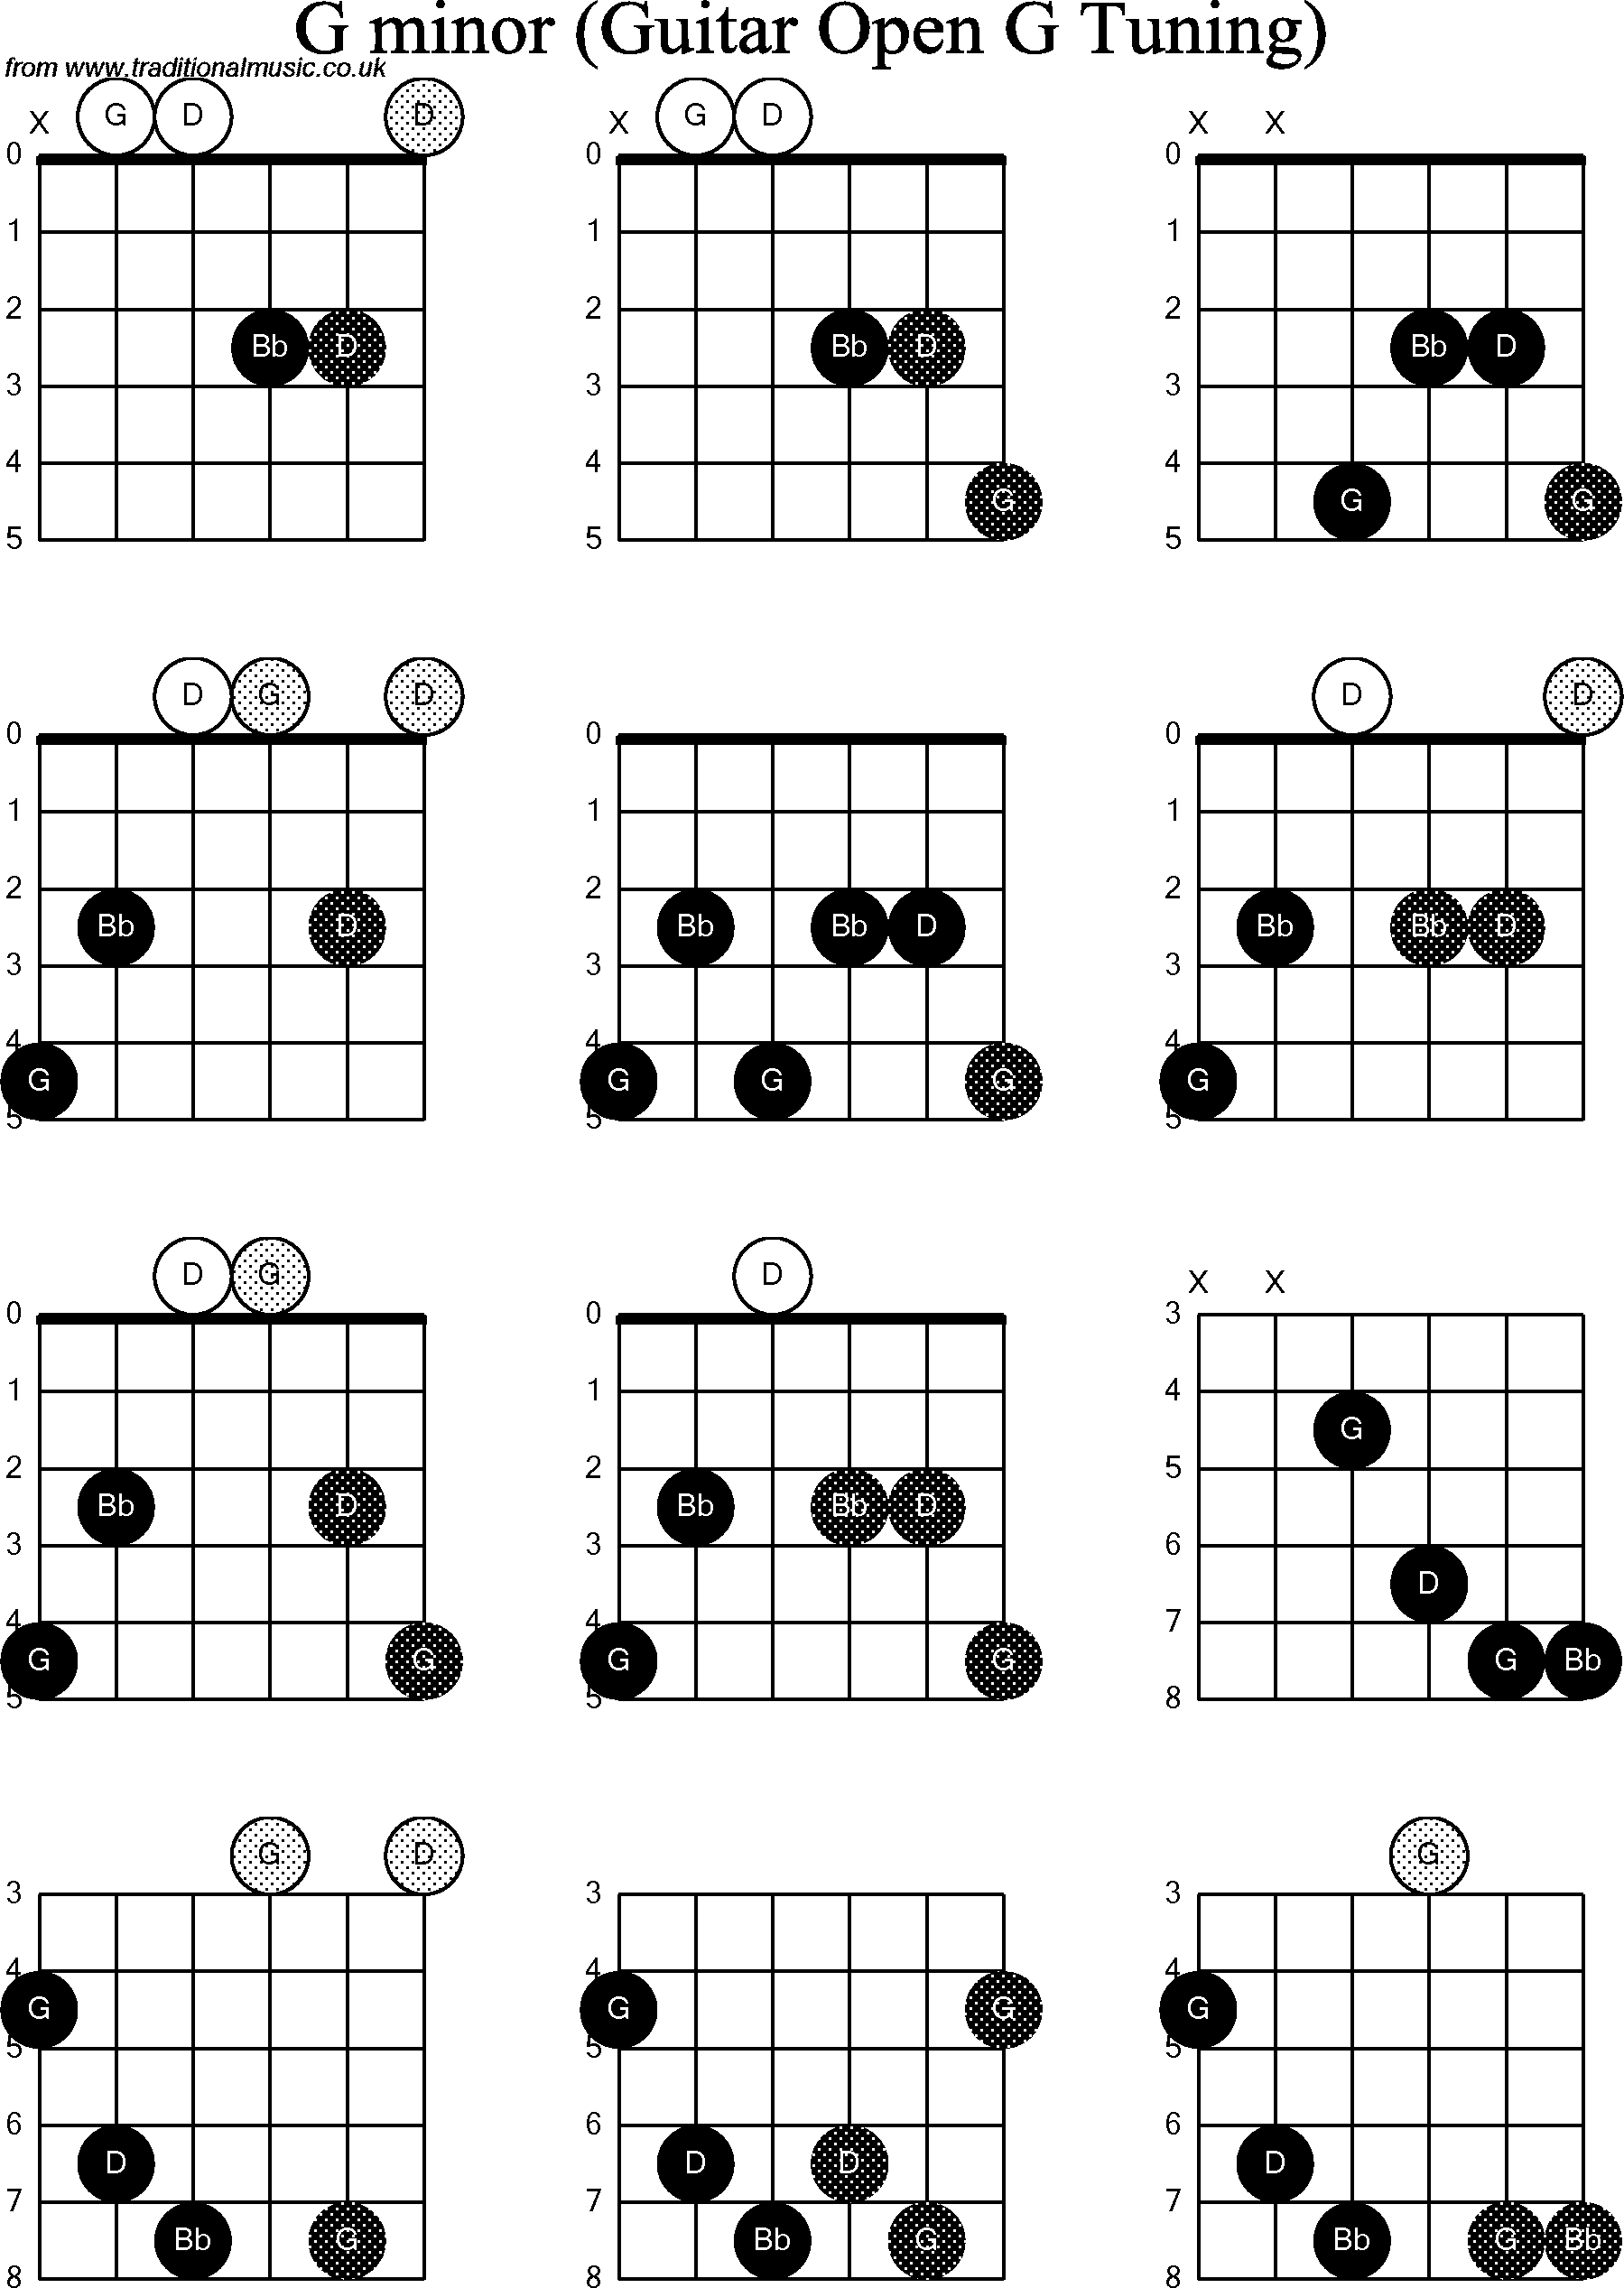 Chord Diagrams For Dobro G Minor Resos Bottleneck Slide N Ting Beginner Guitar How To Read Diagram D Chart Tabs Chords